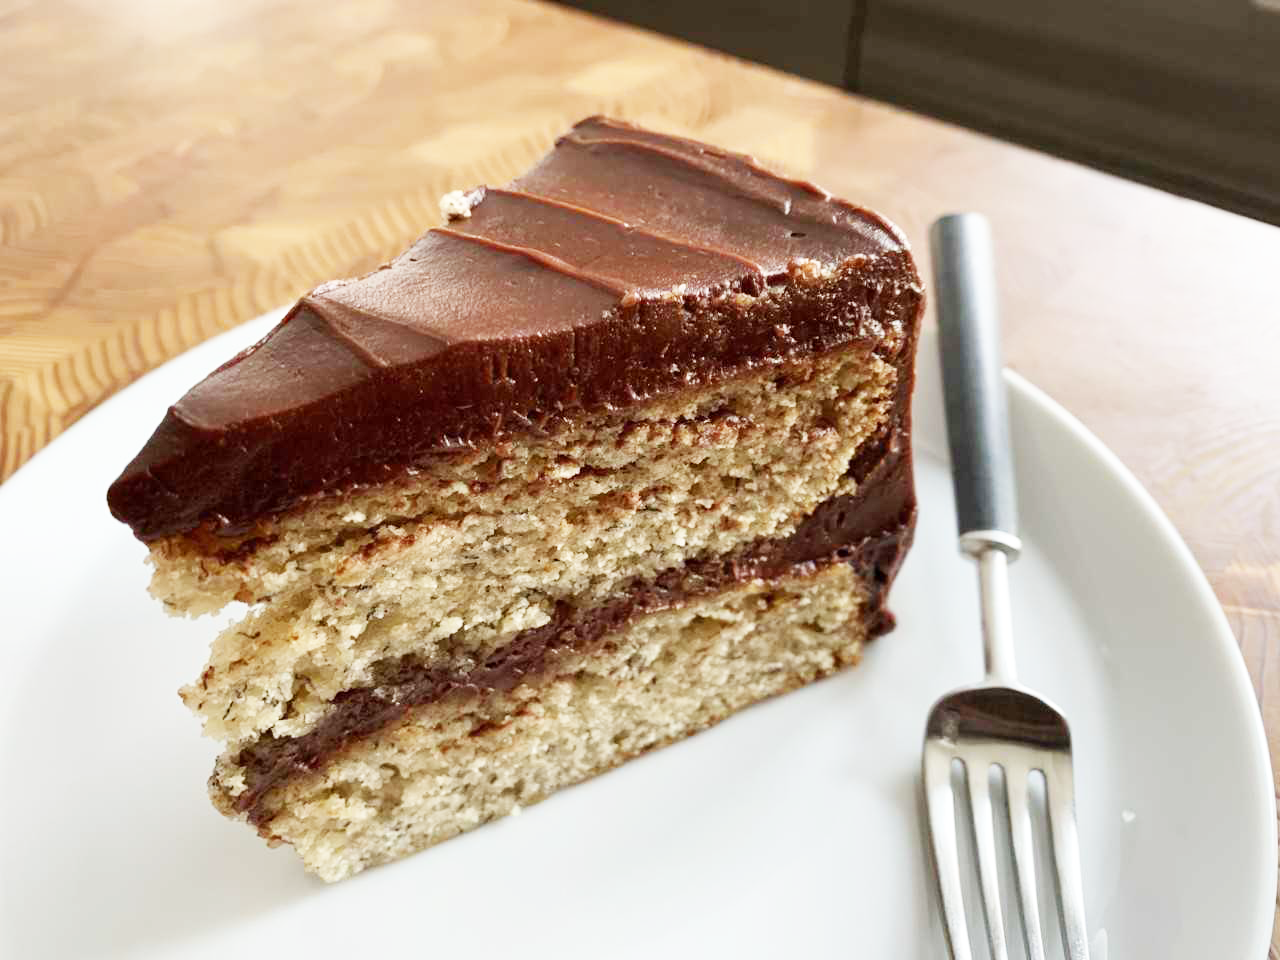 mr-banana-cake-with=chocolate-frosting